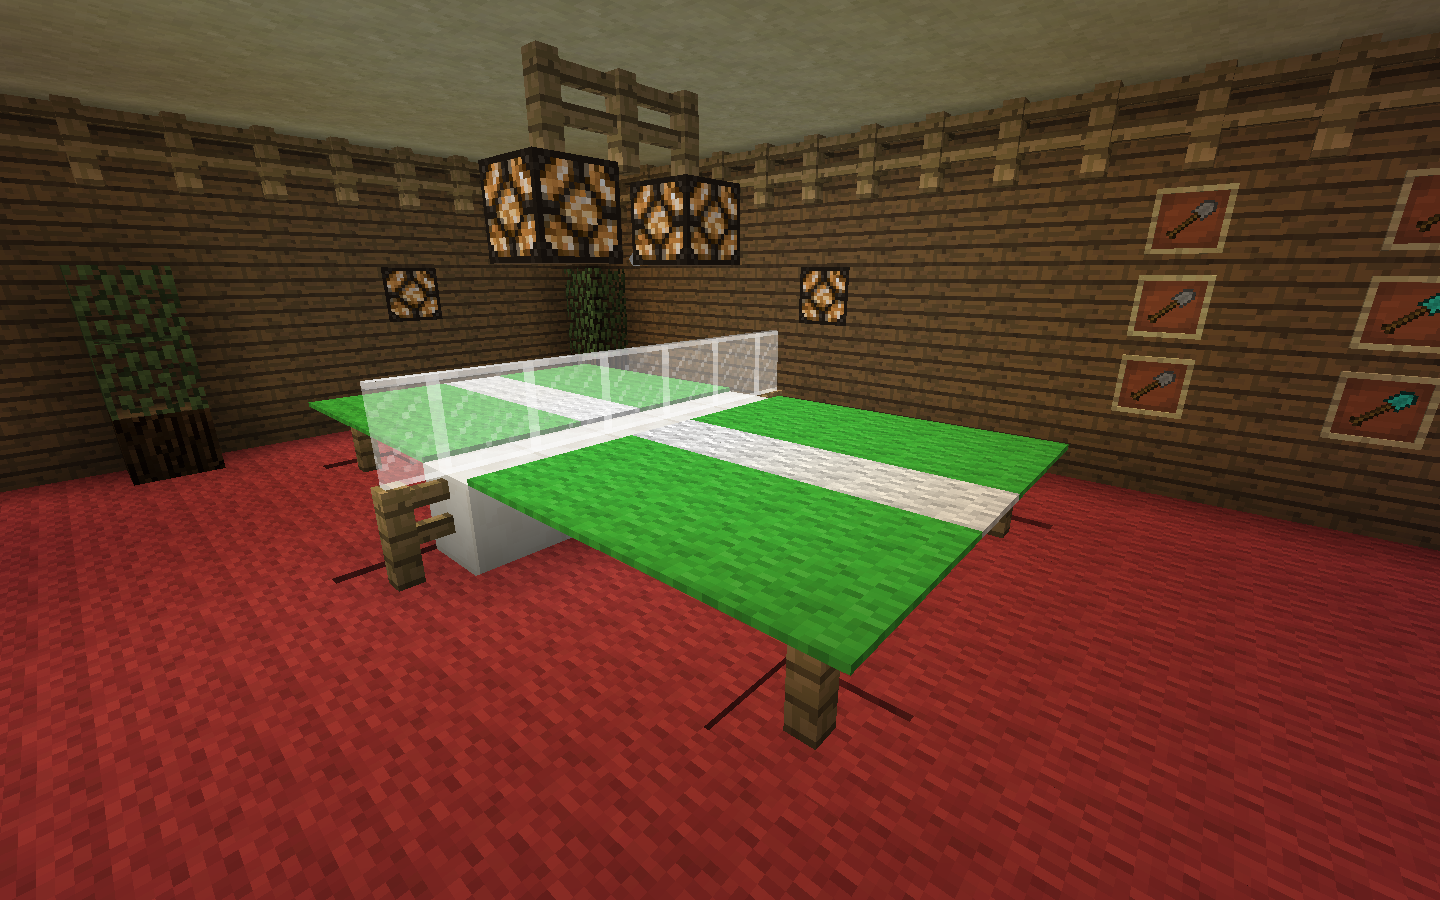 Killerspin JETSET Table Tennis Paddle Set With Balls Ping Pong - Cool minecraft furniture ideas